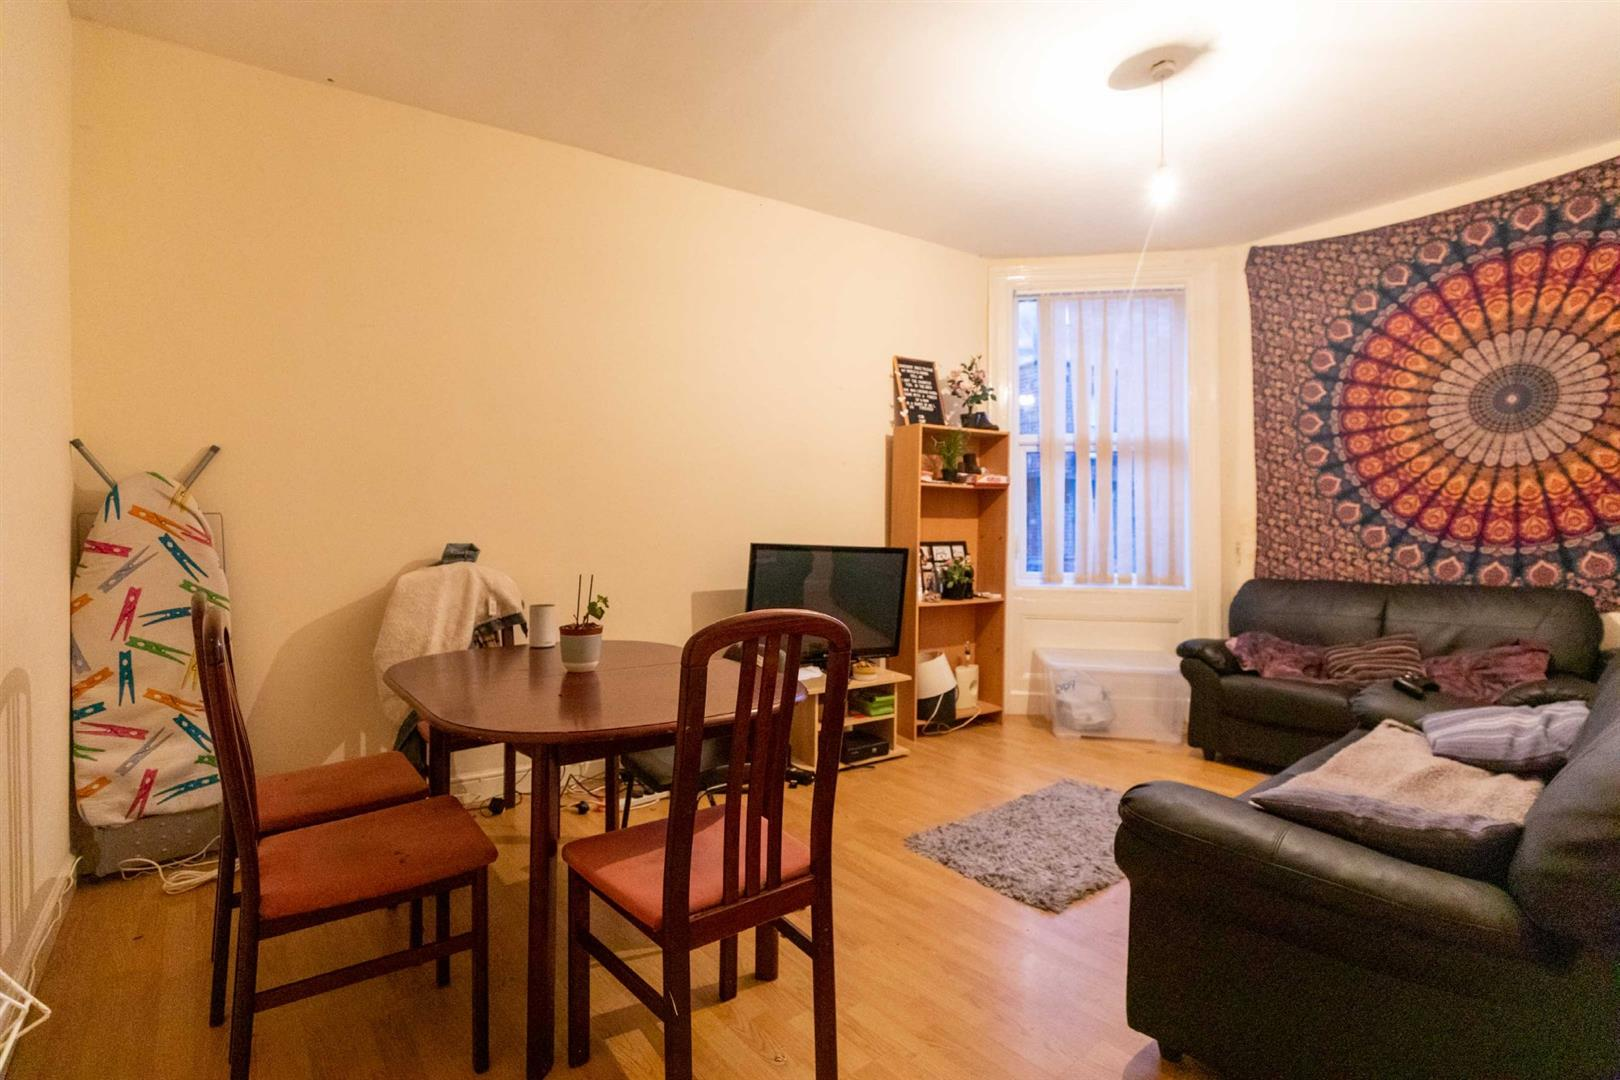 4 bed apartment to rent in Newcastle Upon Tyne, NE2 4DP, NE2